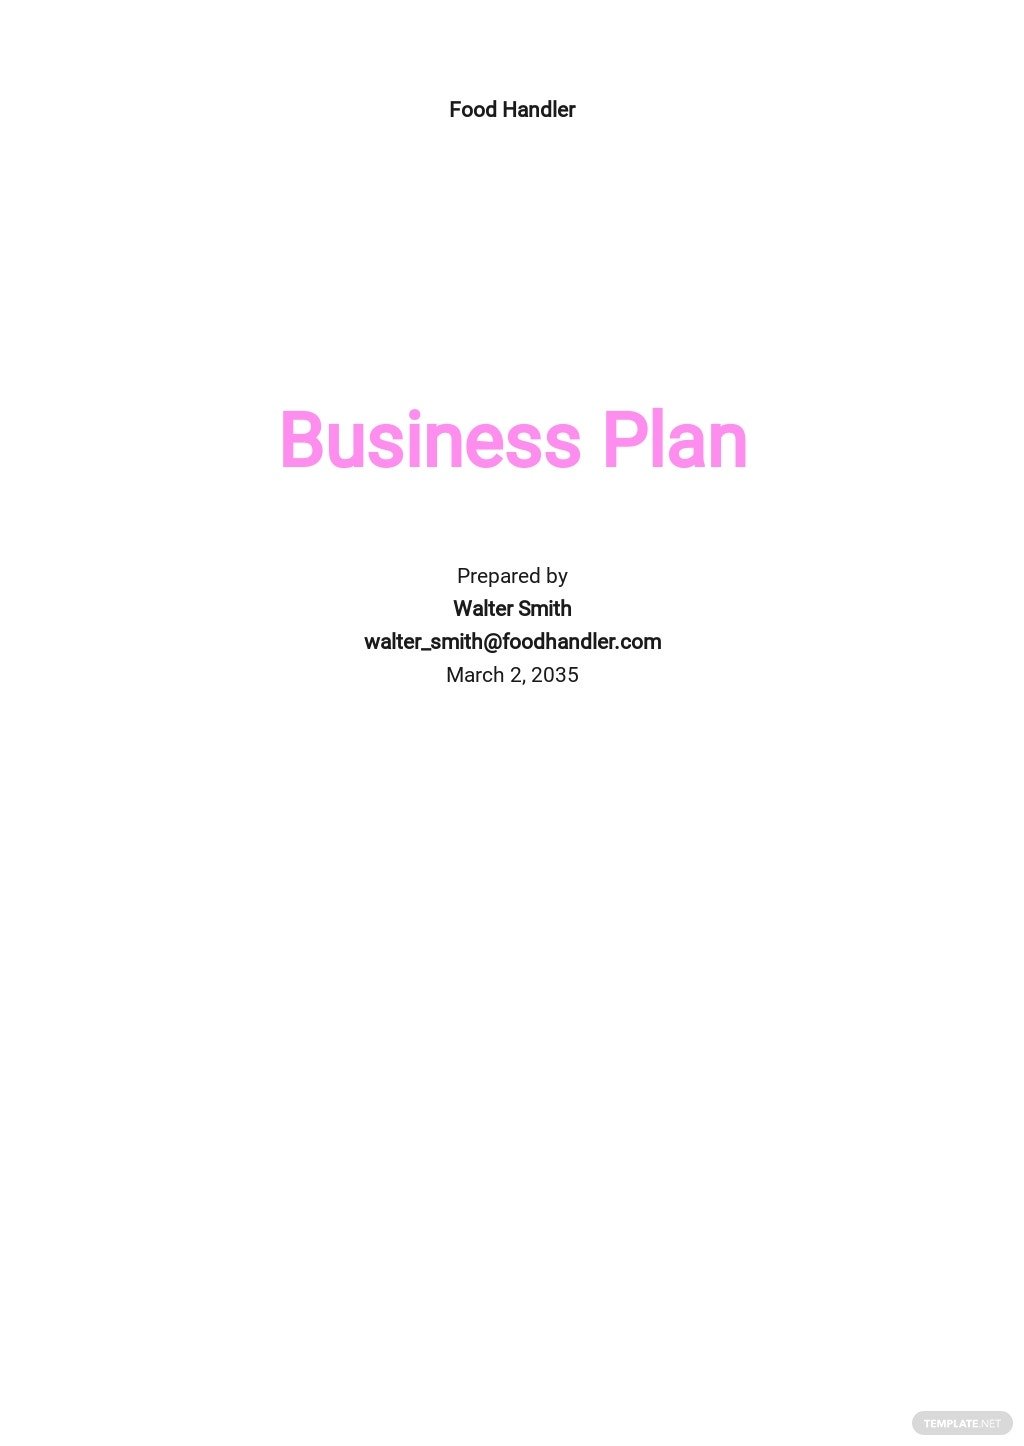 Food Delivery Business Plan Template.jpe